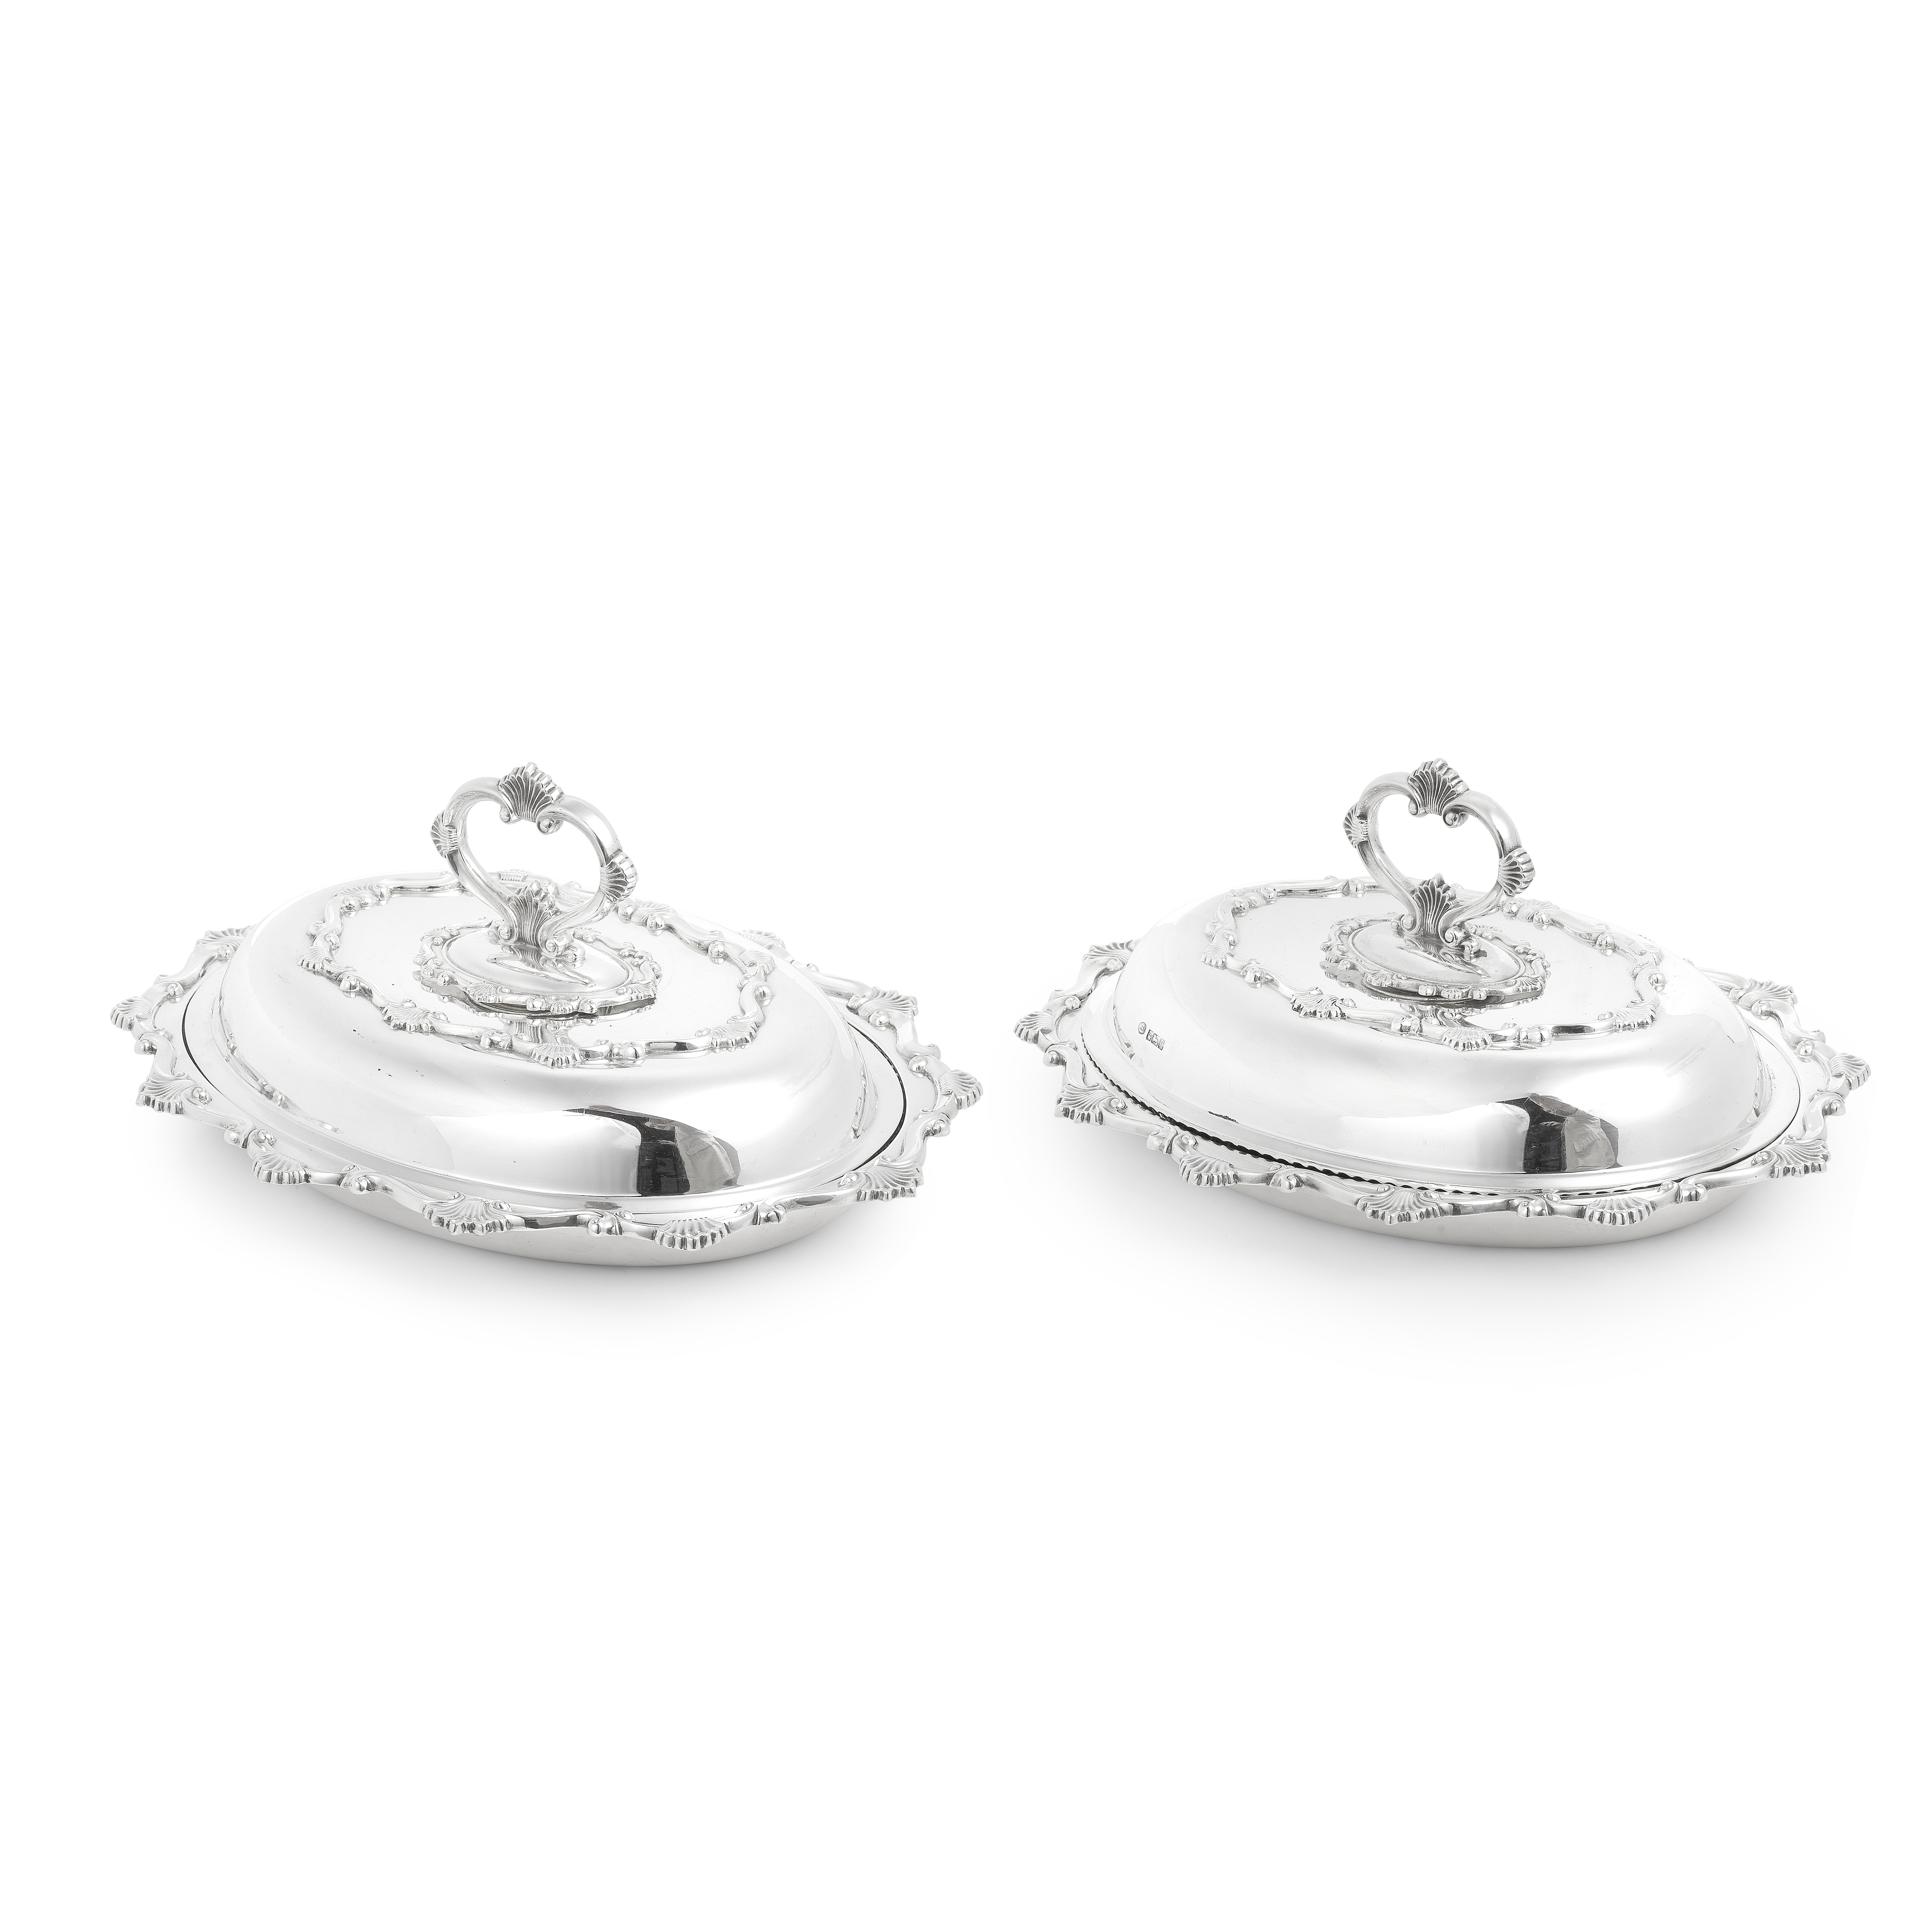 A pair of silver entrée dishes and covers John Round & Son Ltd, Sheffield 1905 (2)